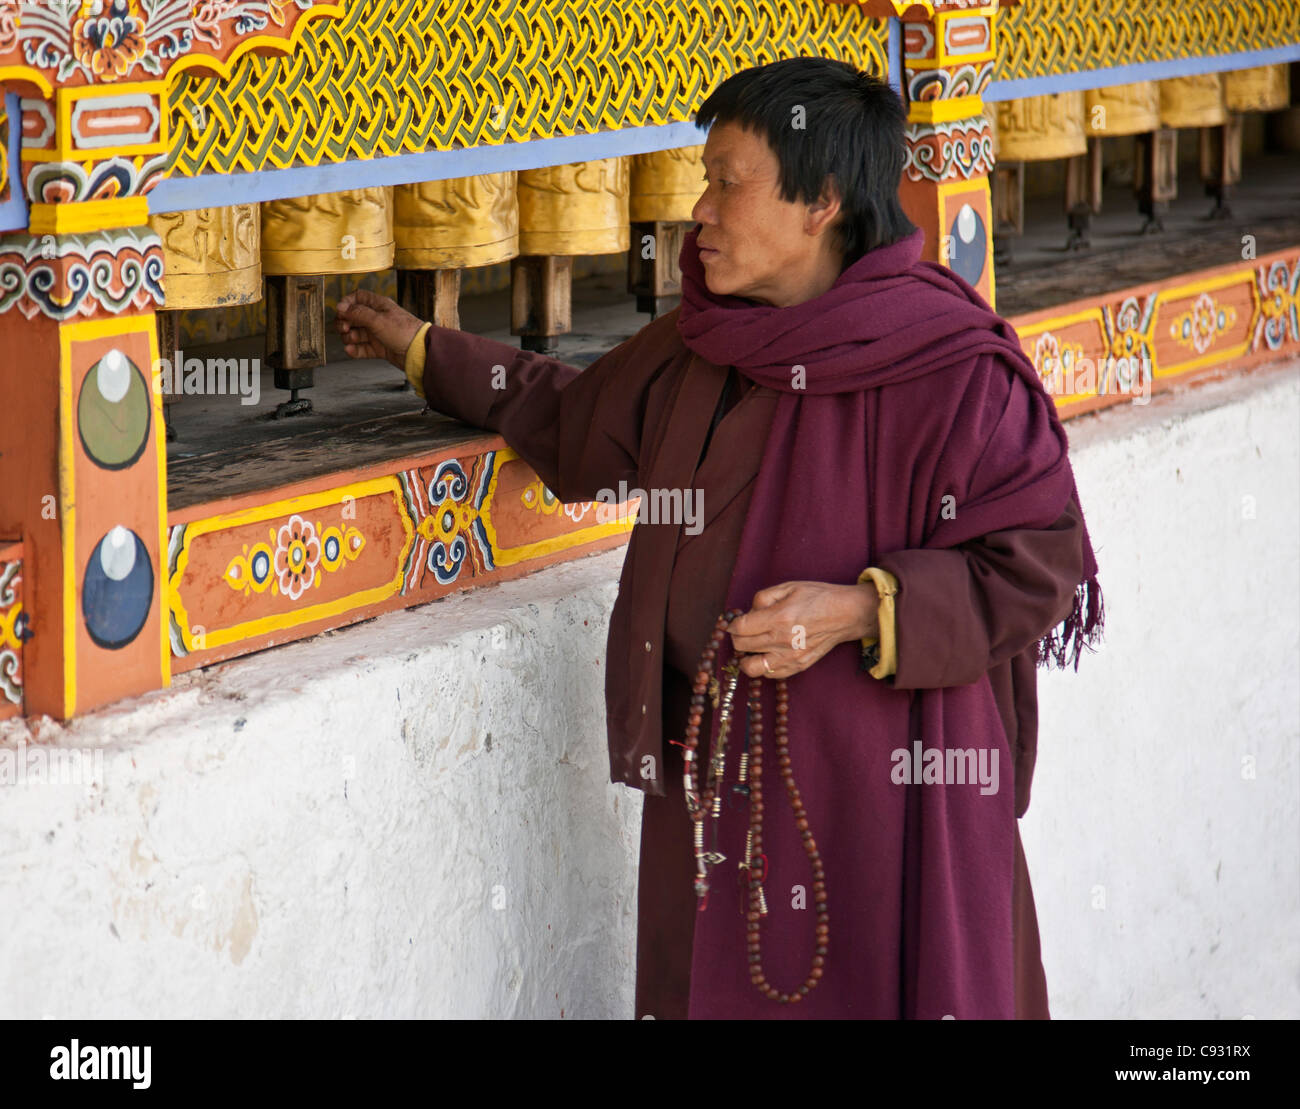 A woman, prayer beads in hand, spins brass prayer wheels at the 18th century Chorten Kora in Trashi Yangtze. - Stock Image